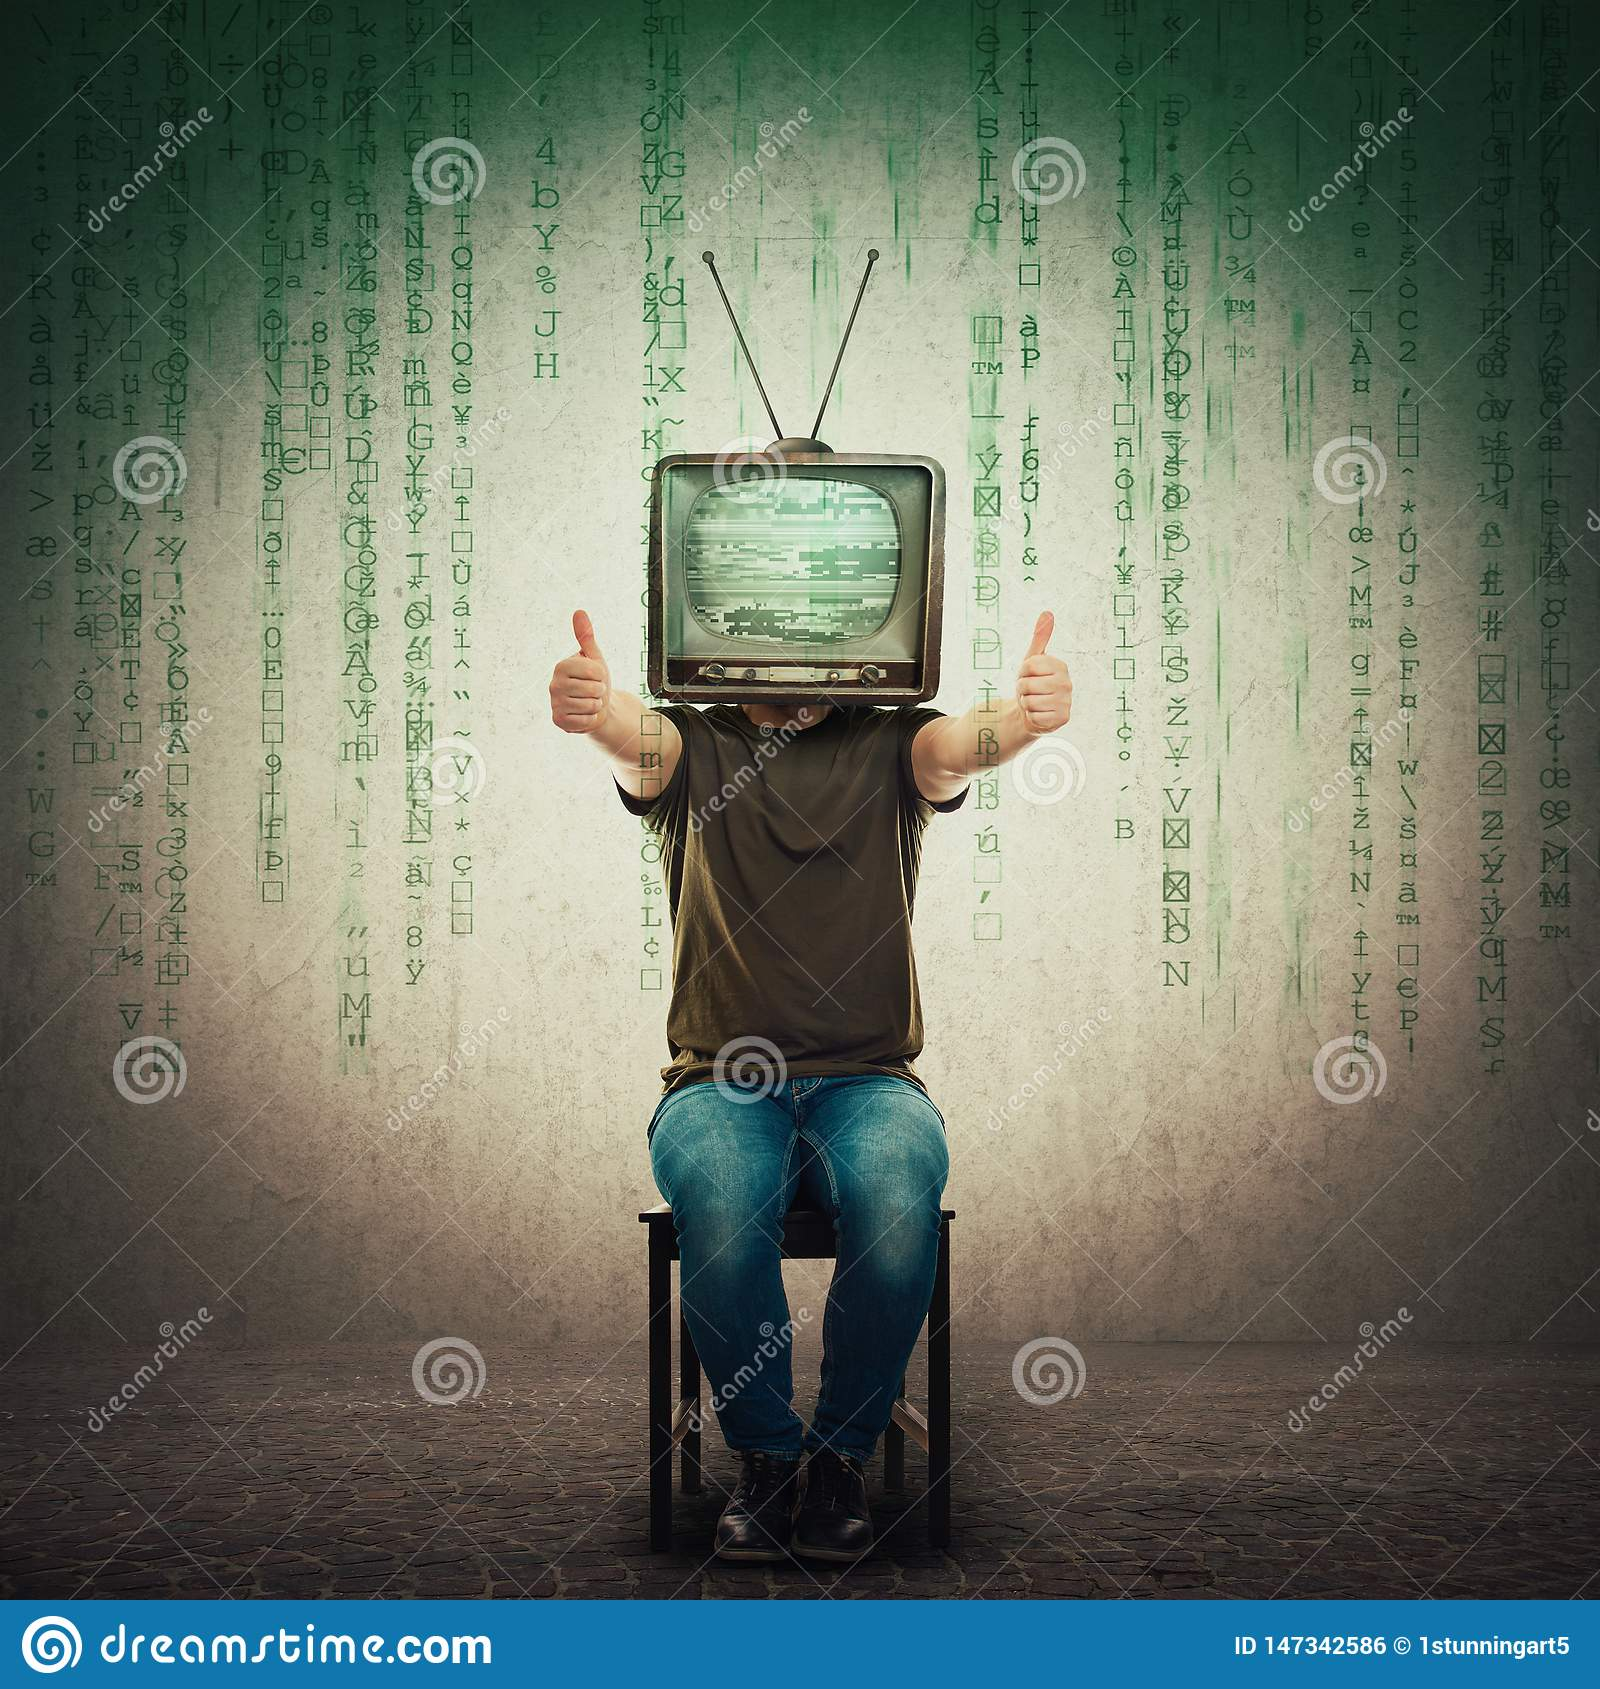 Excited man seated on a chair with an old TV instead of head showing thumbs up, positive feedback like gesture